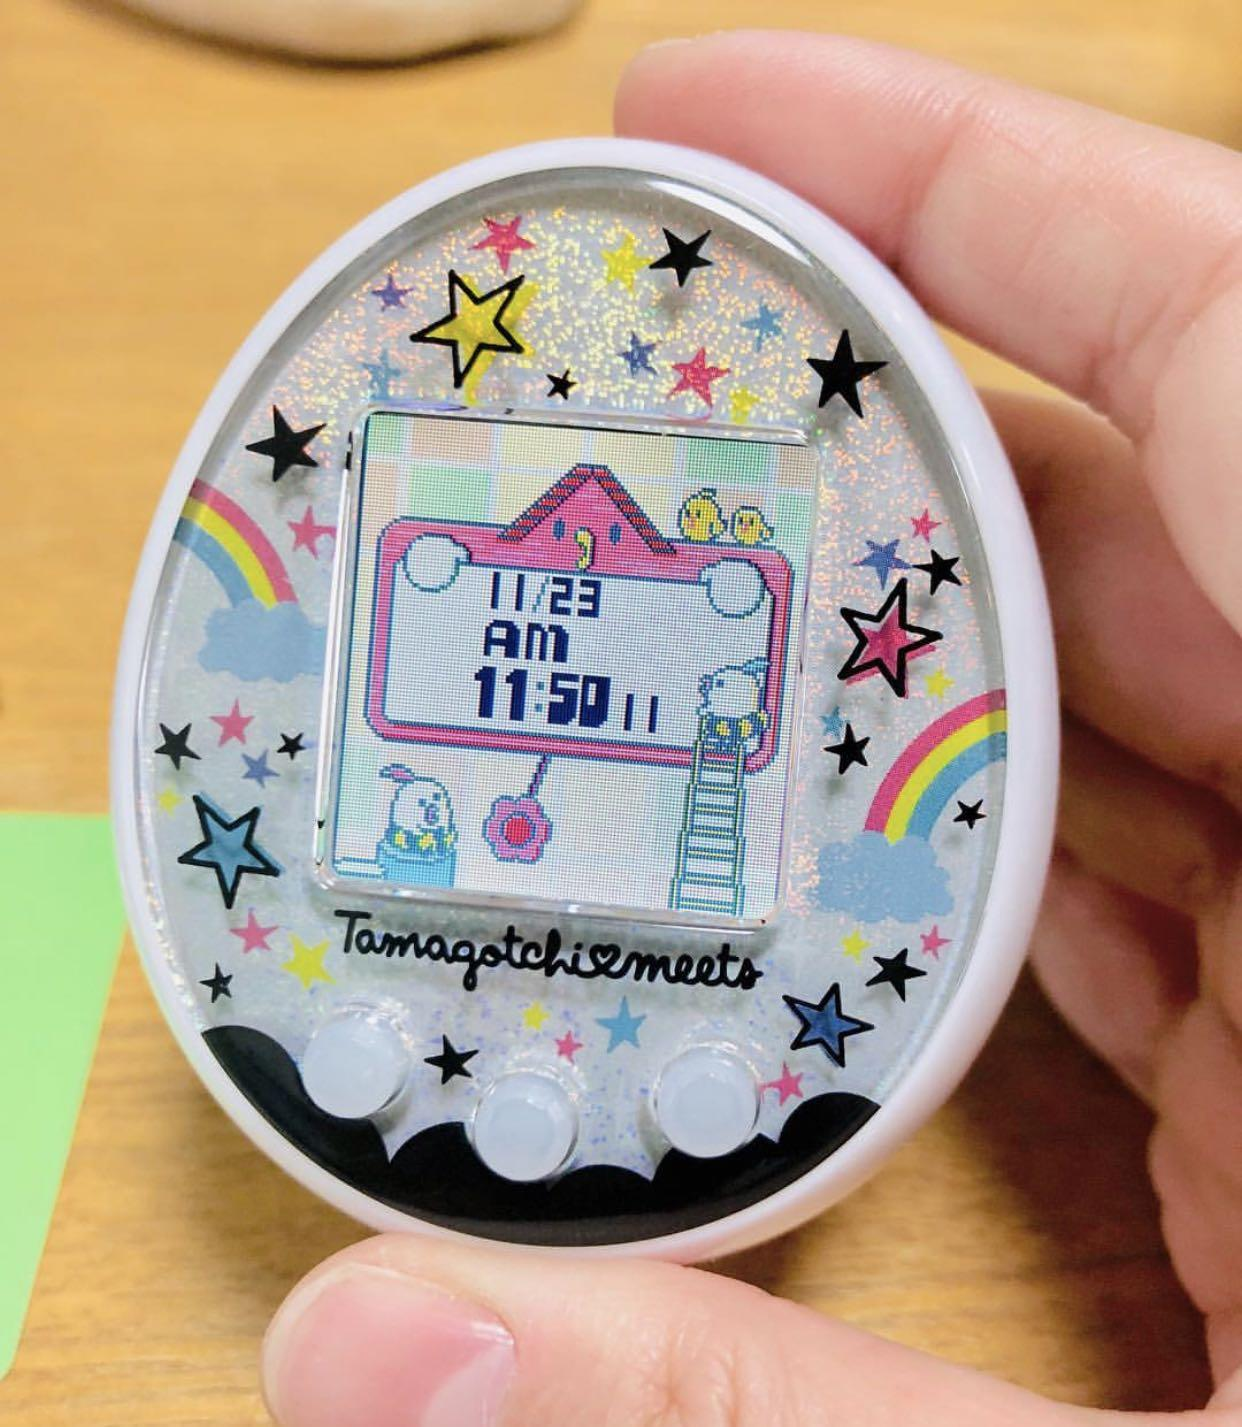 Tamagotchi Meets White - LIMITED EDITION, Toys & Games